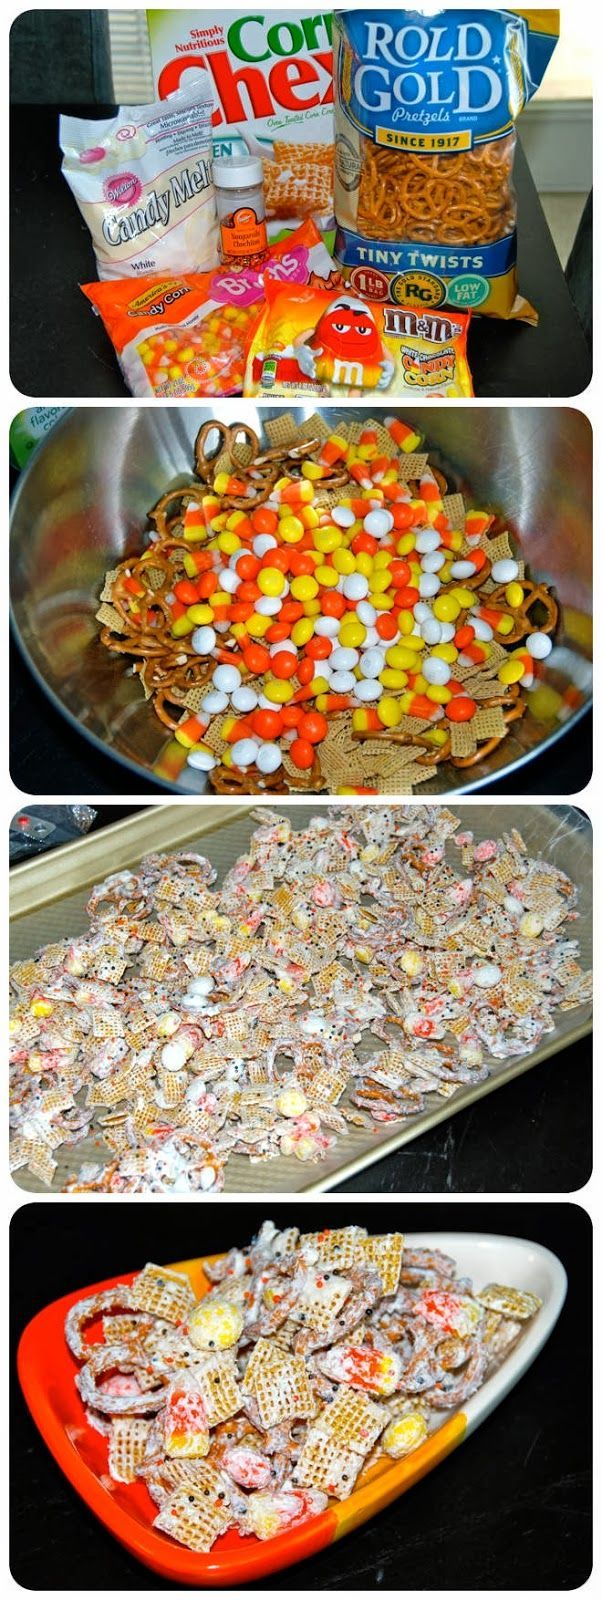 Halloween Chex Mix. So easy to make, it only took about 5 minutes. This treat was delicious and stayed crunchy and fresh for a whole week in tupperware.